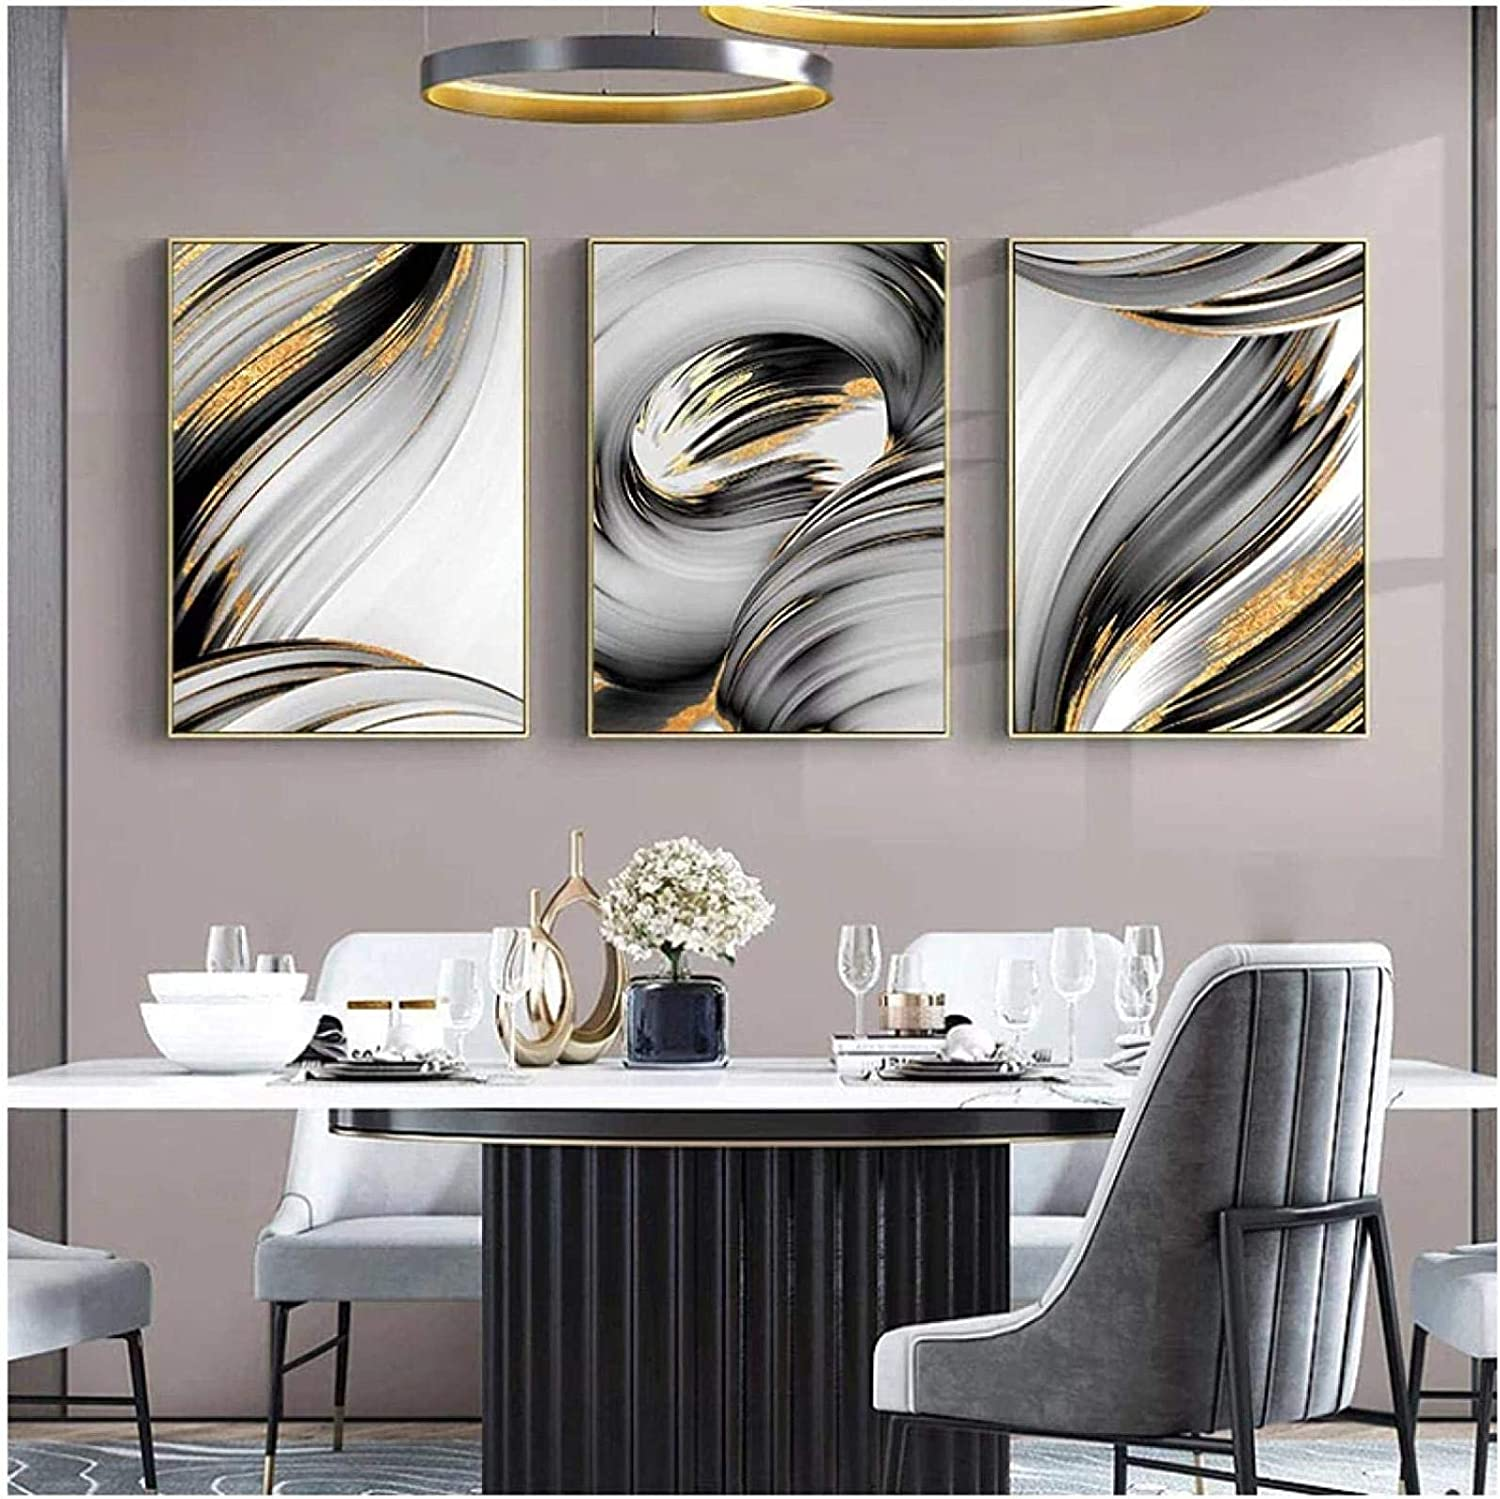 Poster Artworks 3 Piece 11.8x19.7in 30x50cm 2021new shipping free Abstract Frame No Attention brand B